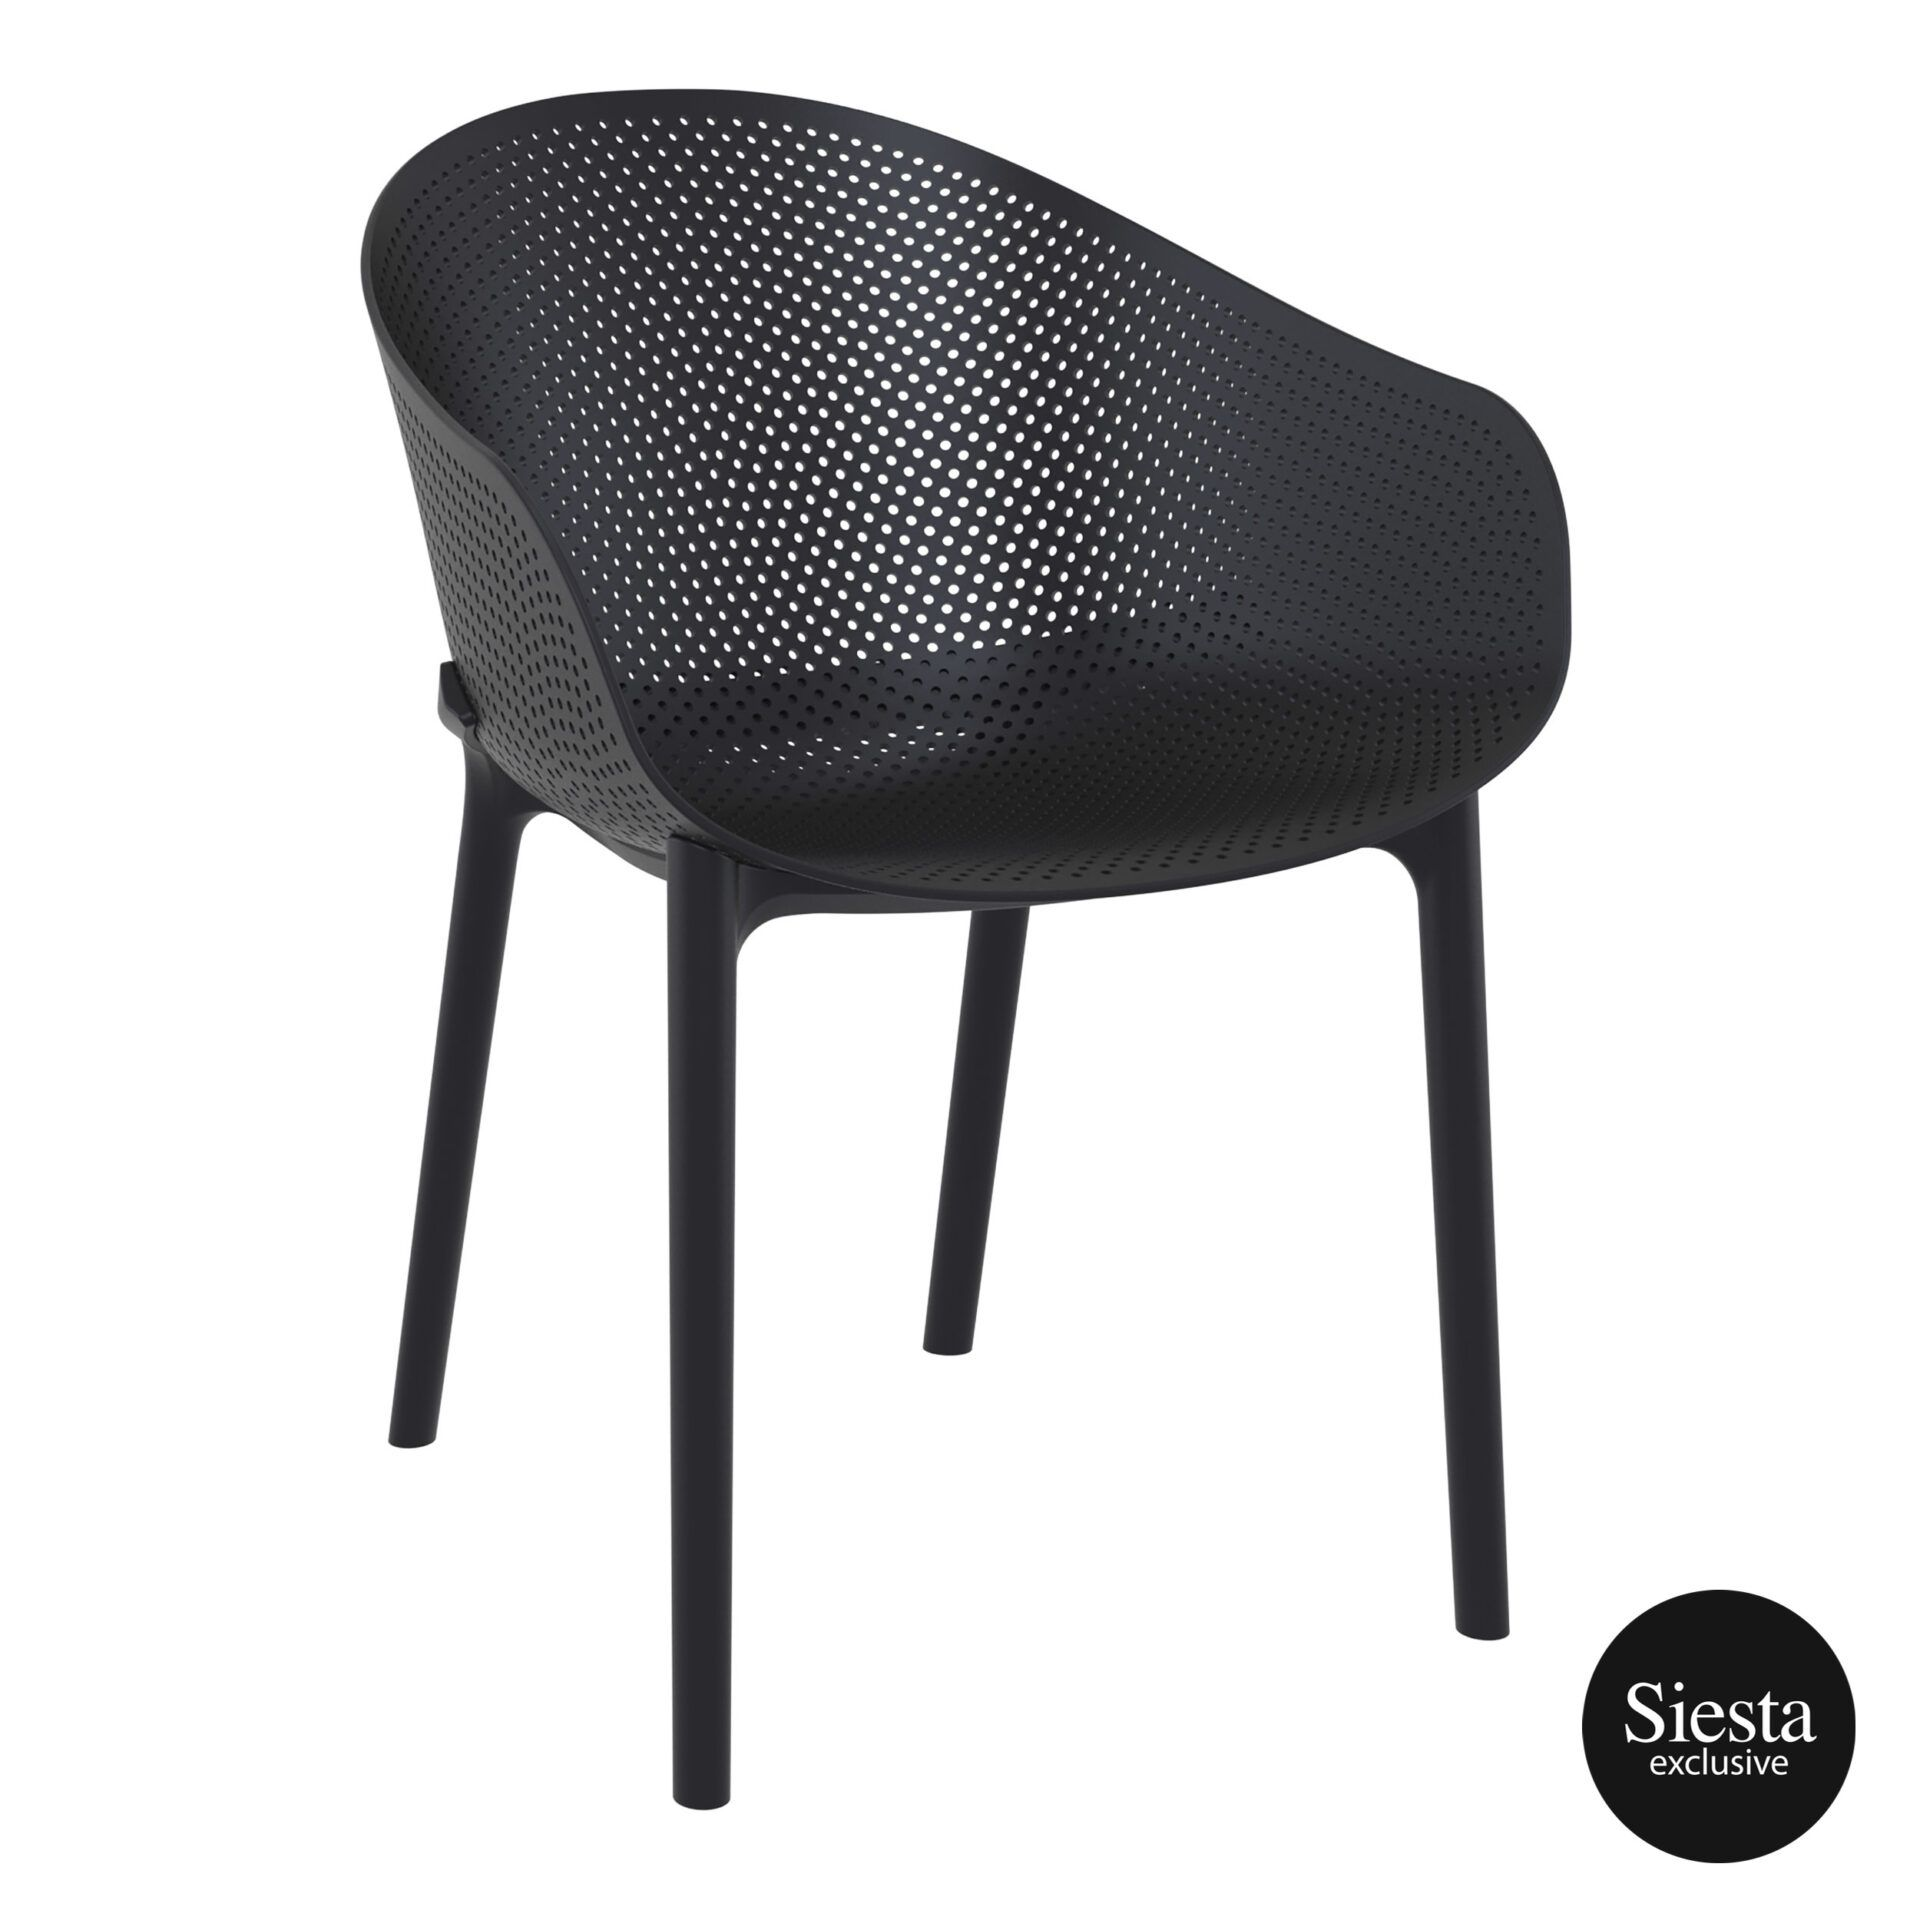 outdoor seating polypropylene sky chair black front side 1